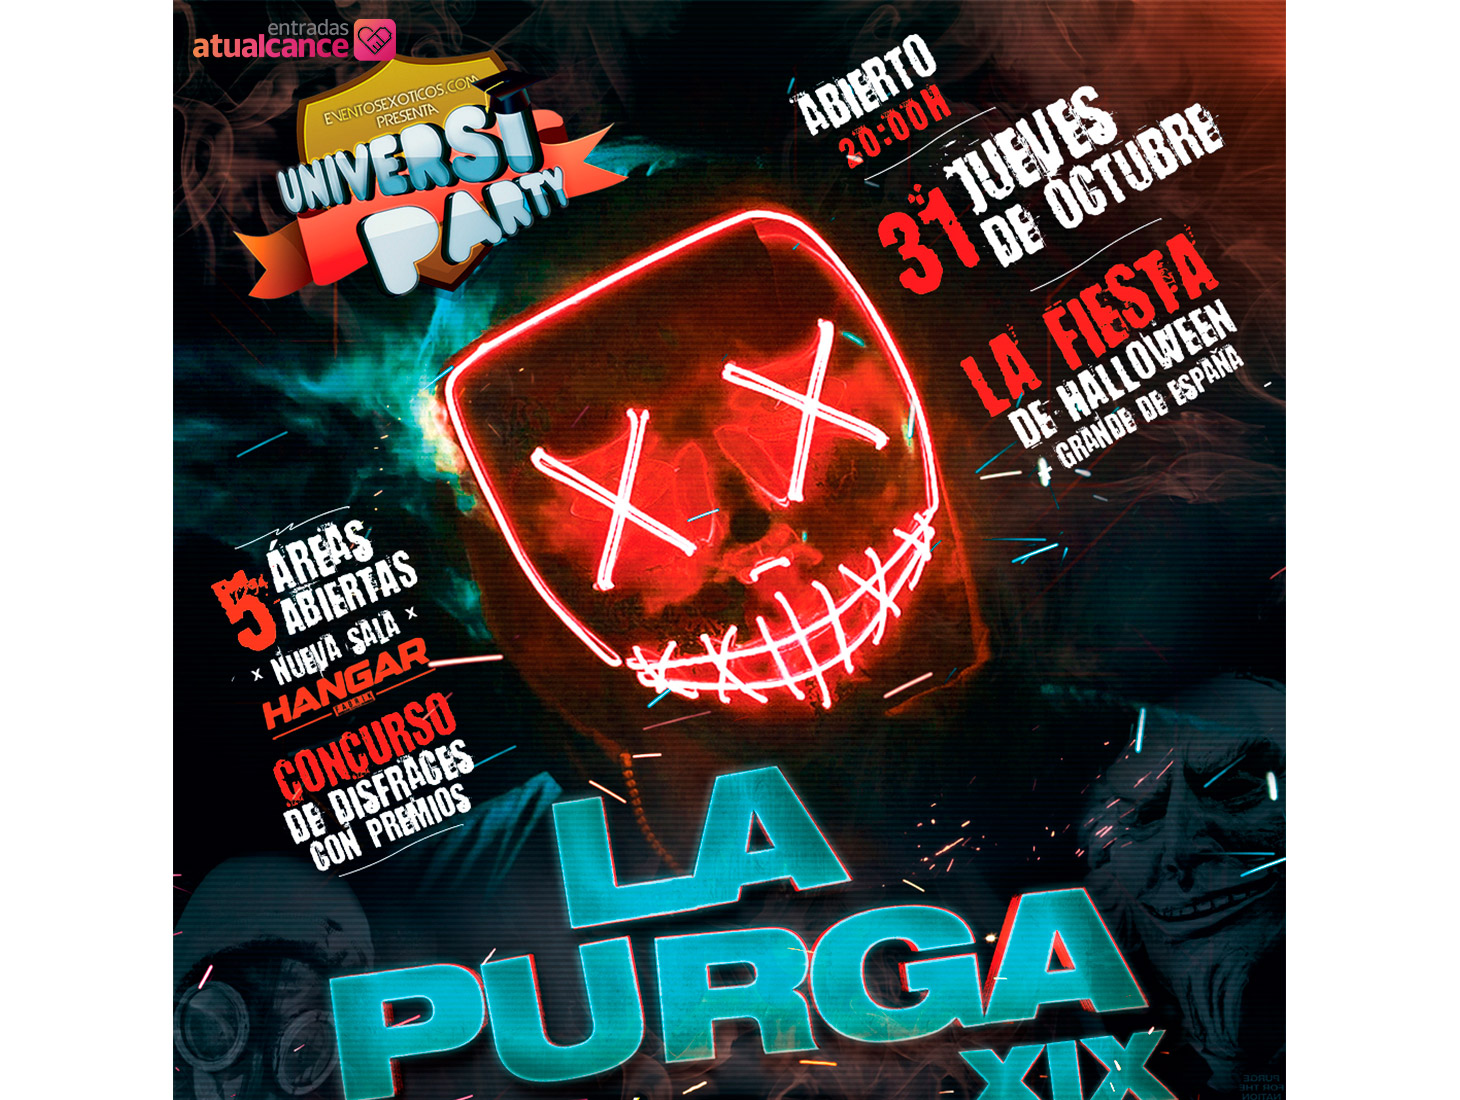 universiparty-halloween-la-purga-5d920d4207ce0.jpeg